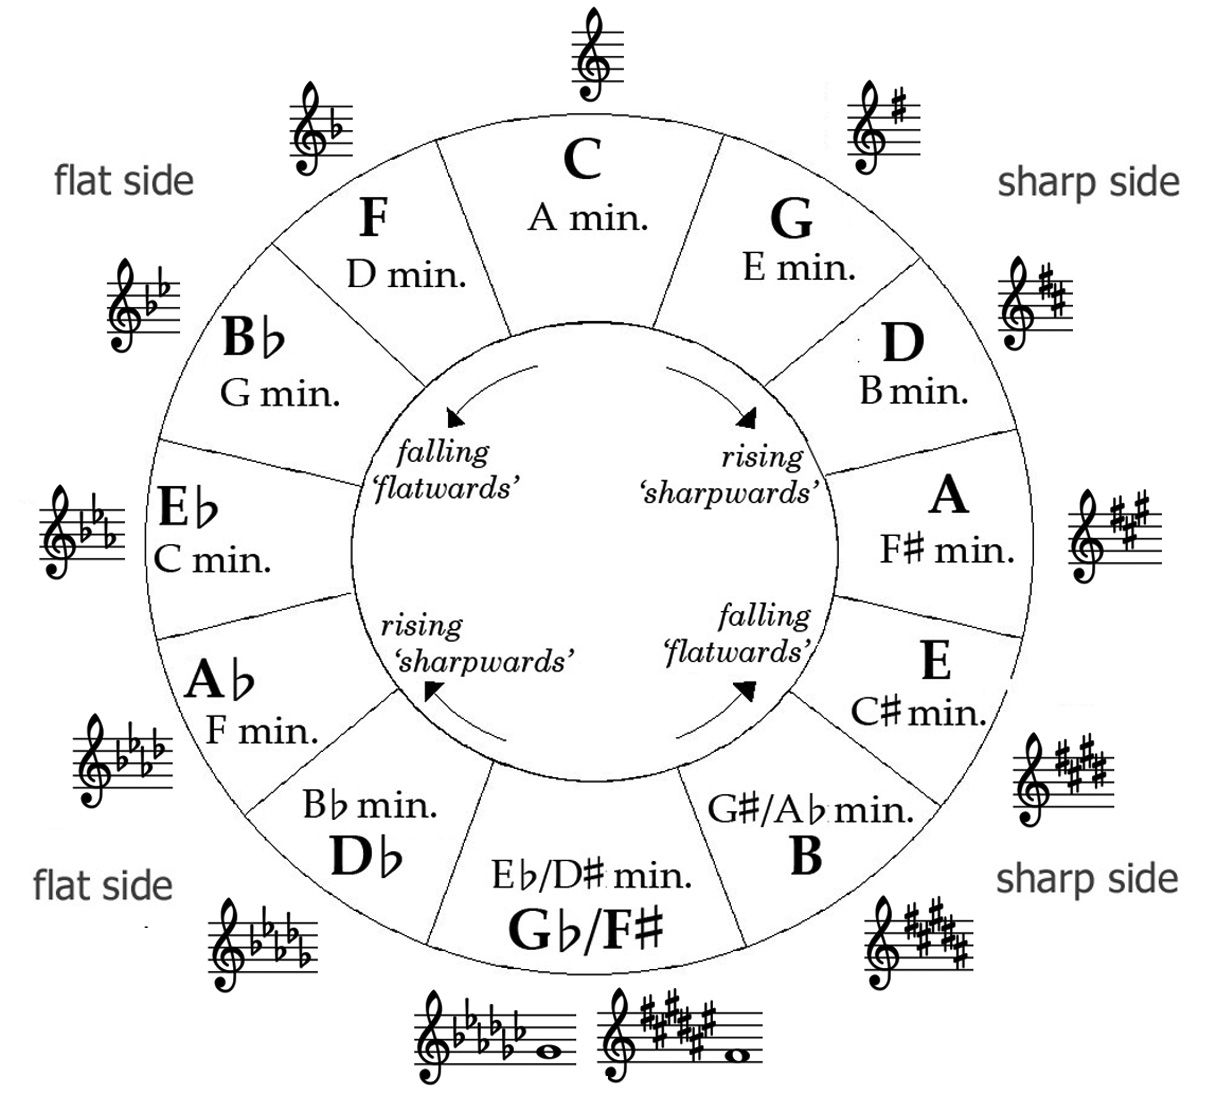 circle of fifths bass clef